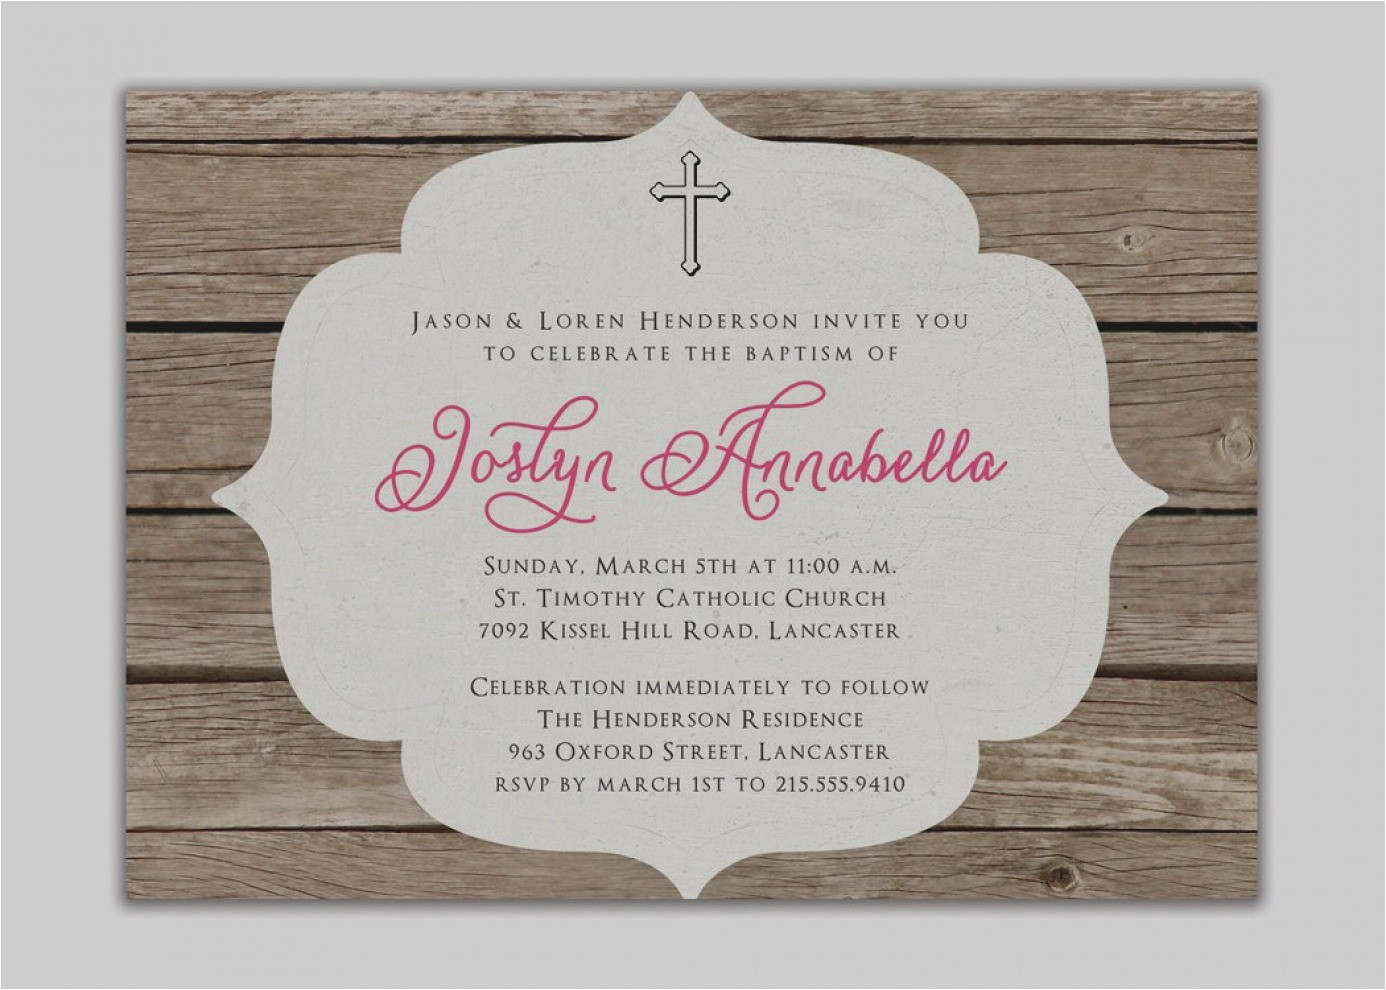 images baptism invitations in spanish precious moments